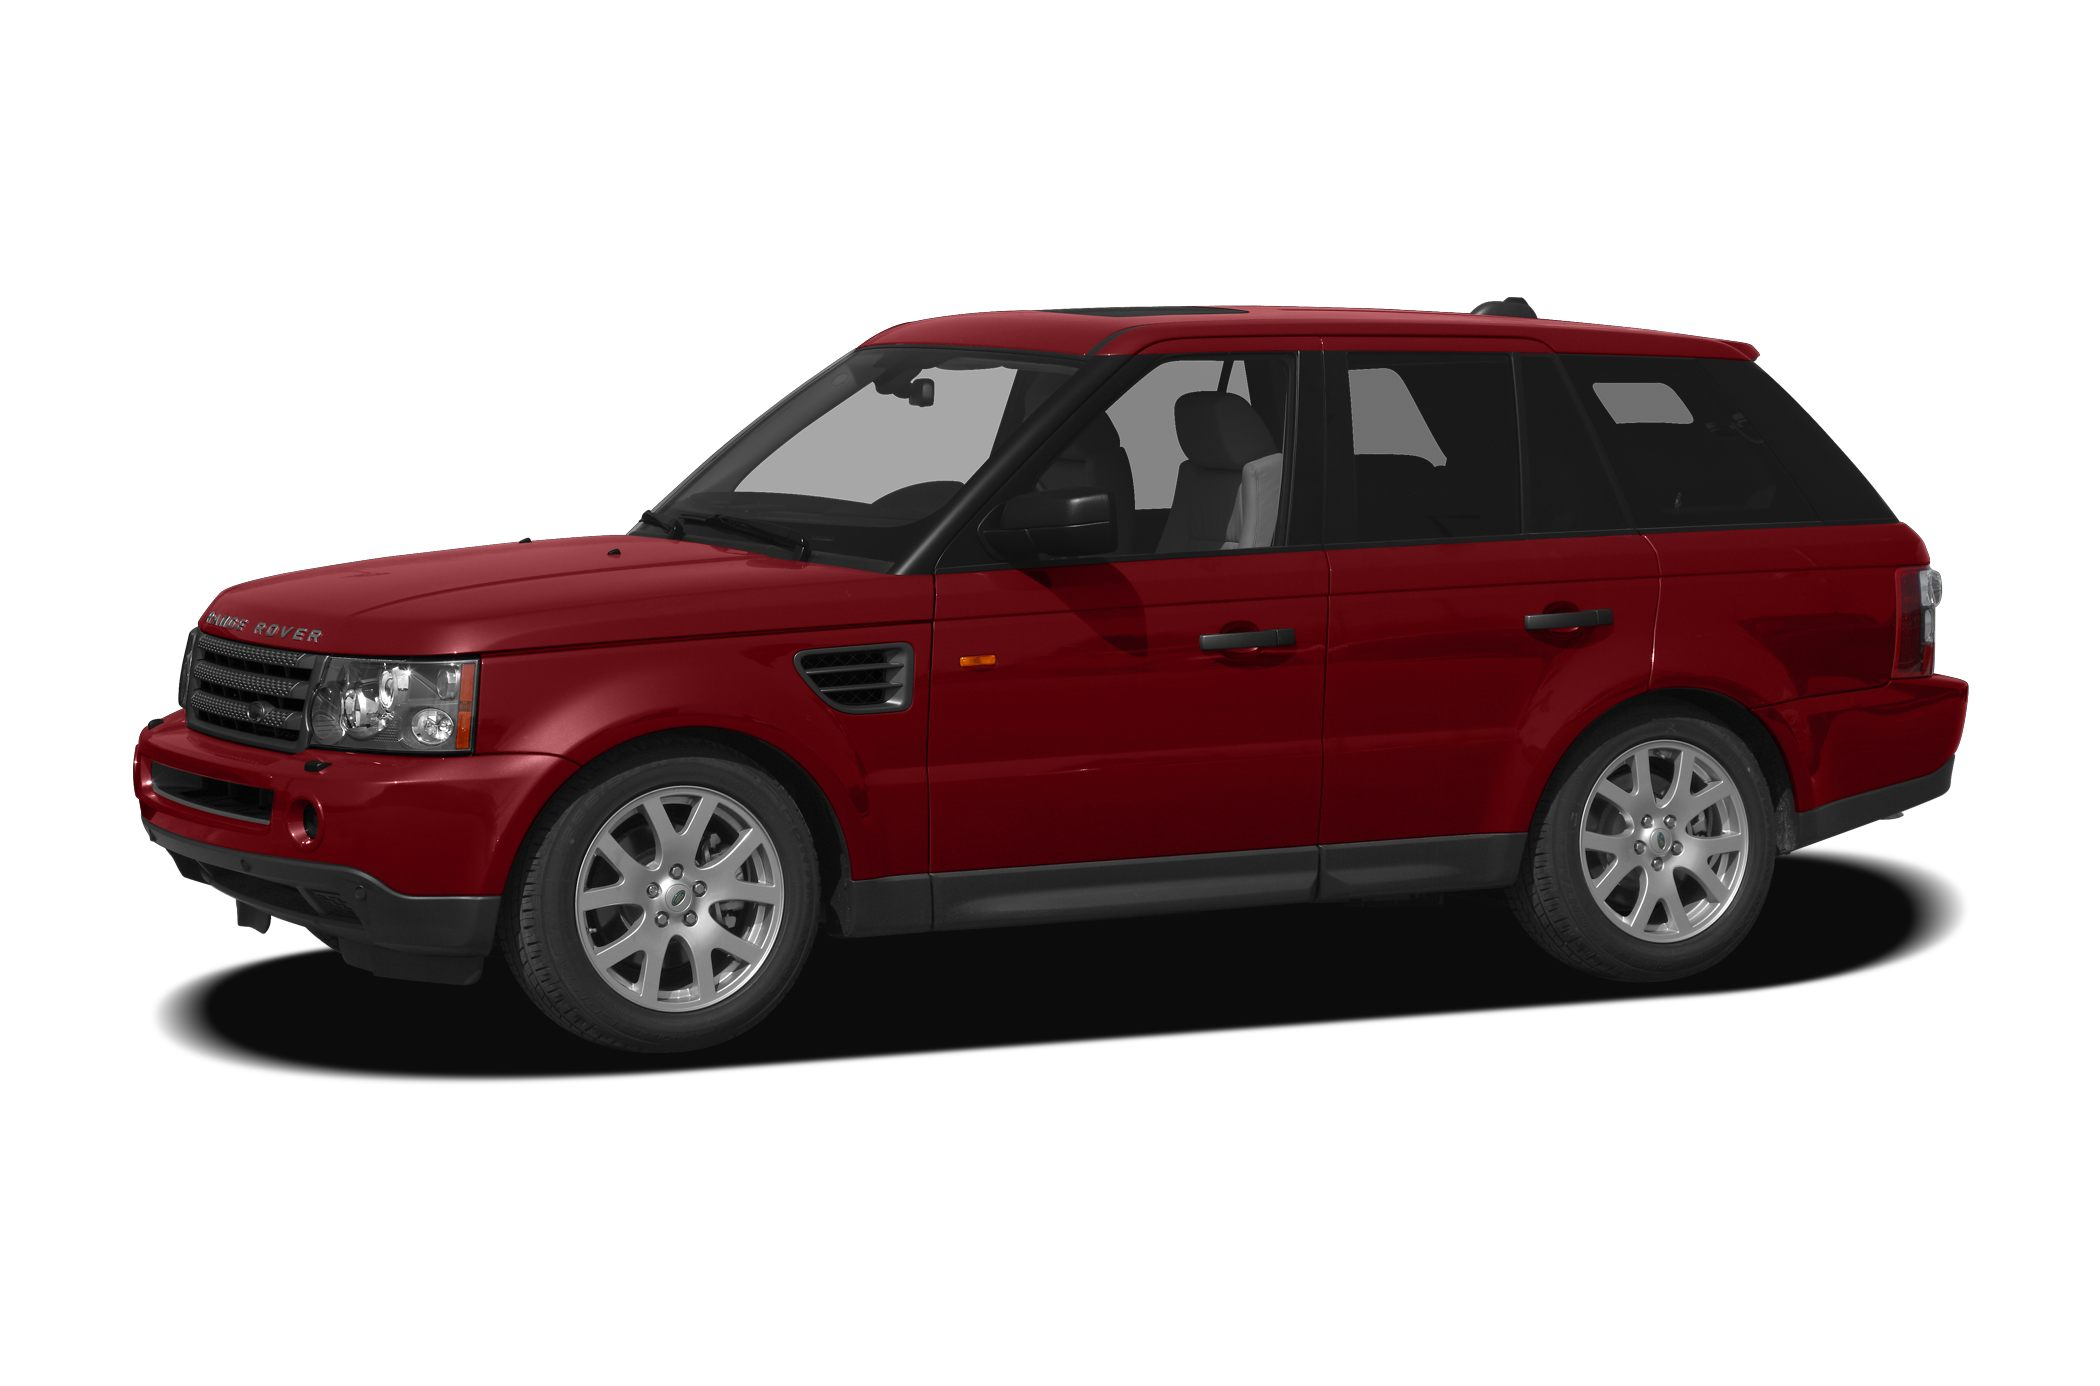 2008 Land Rover Range Rover Sport Supercharged SUV for sale in Tampa for $24,995 with 76,596 miles.